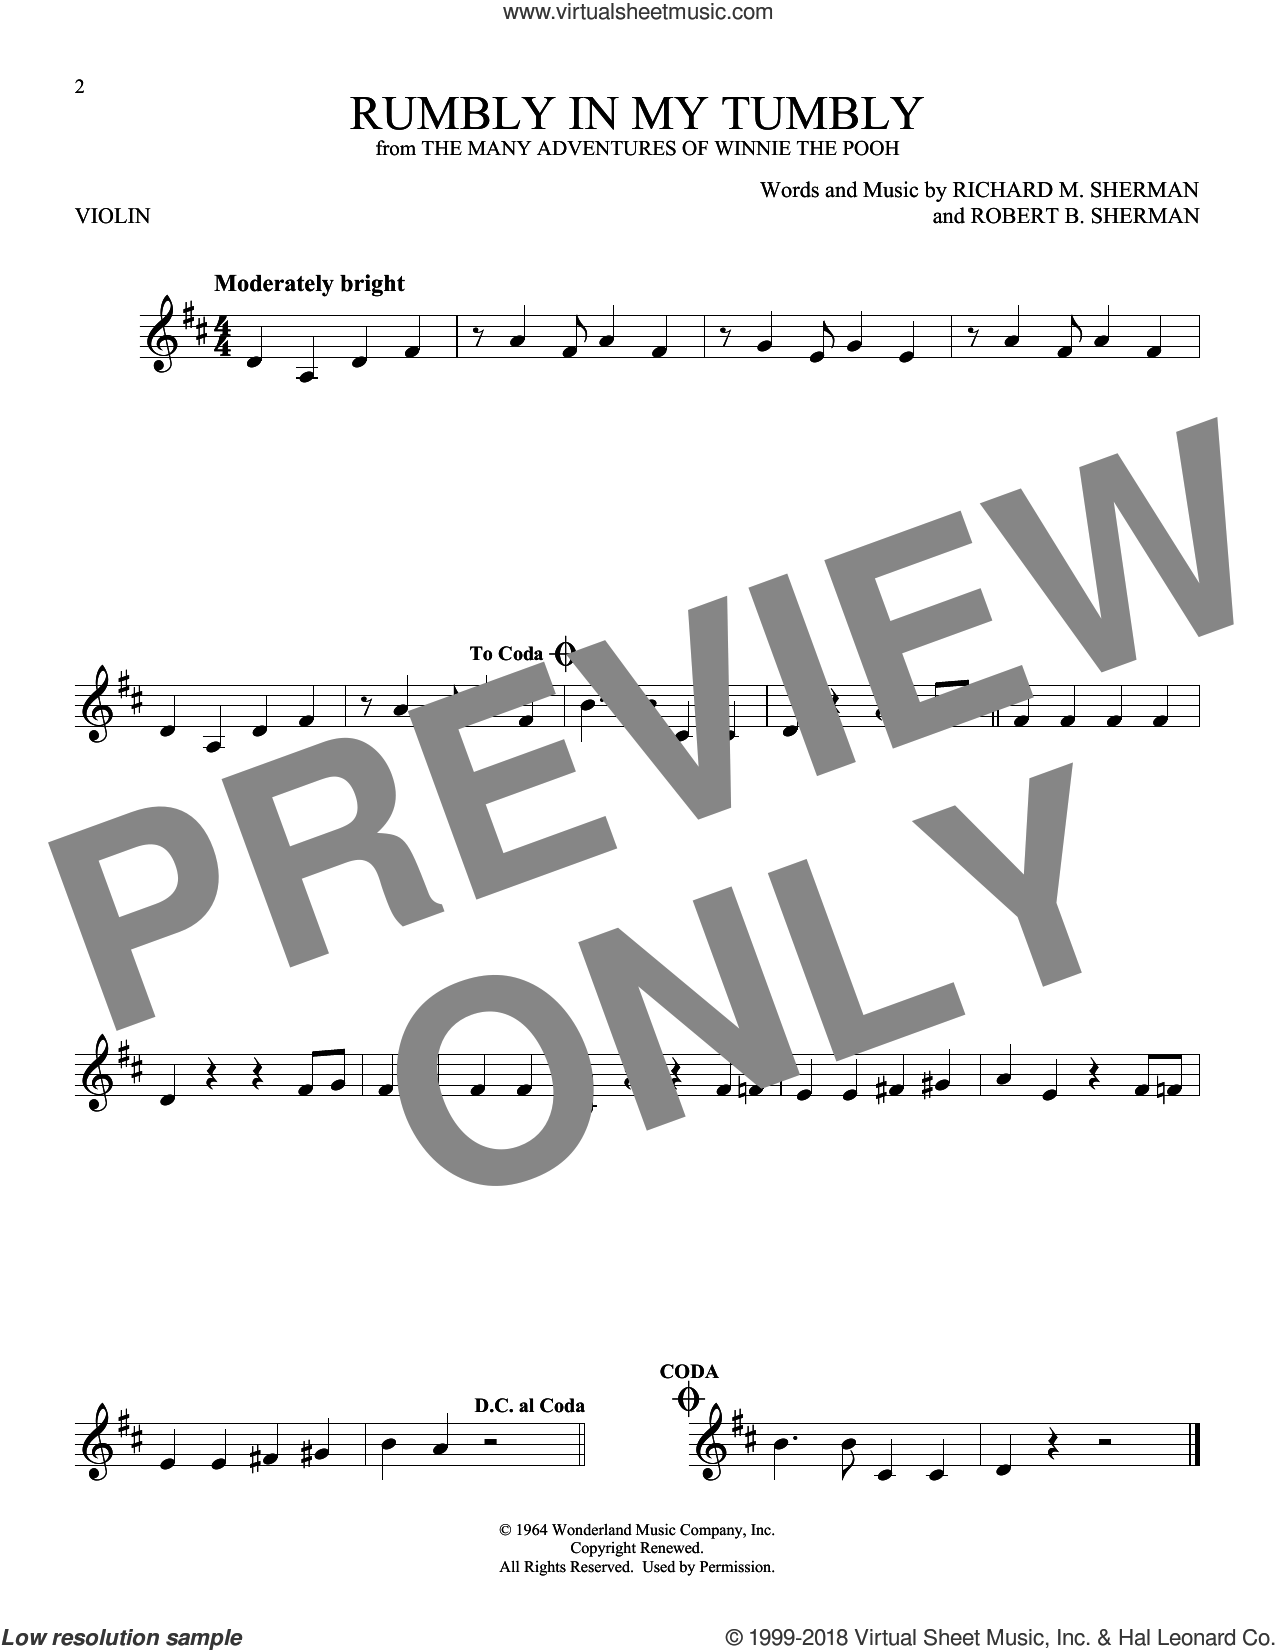 Rumbly In My Tumbly sheet music for violin solo by Richard M. Sherman and Robert B. Sherman, intermediate skill level